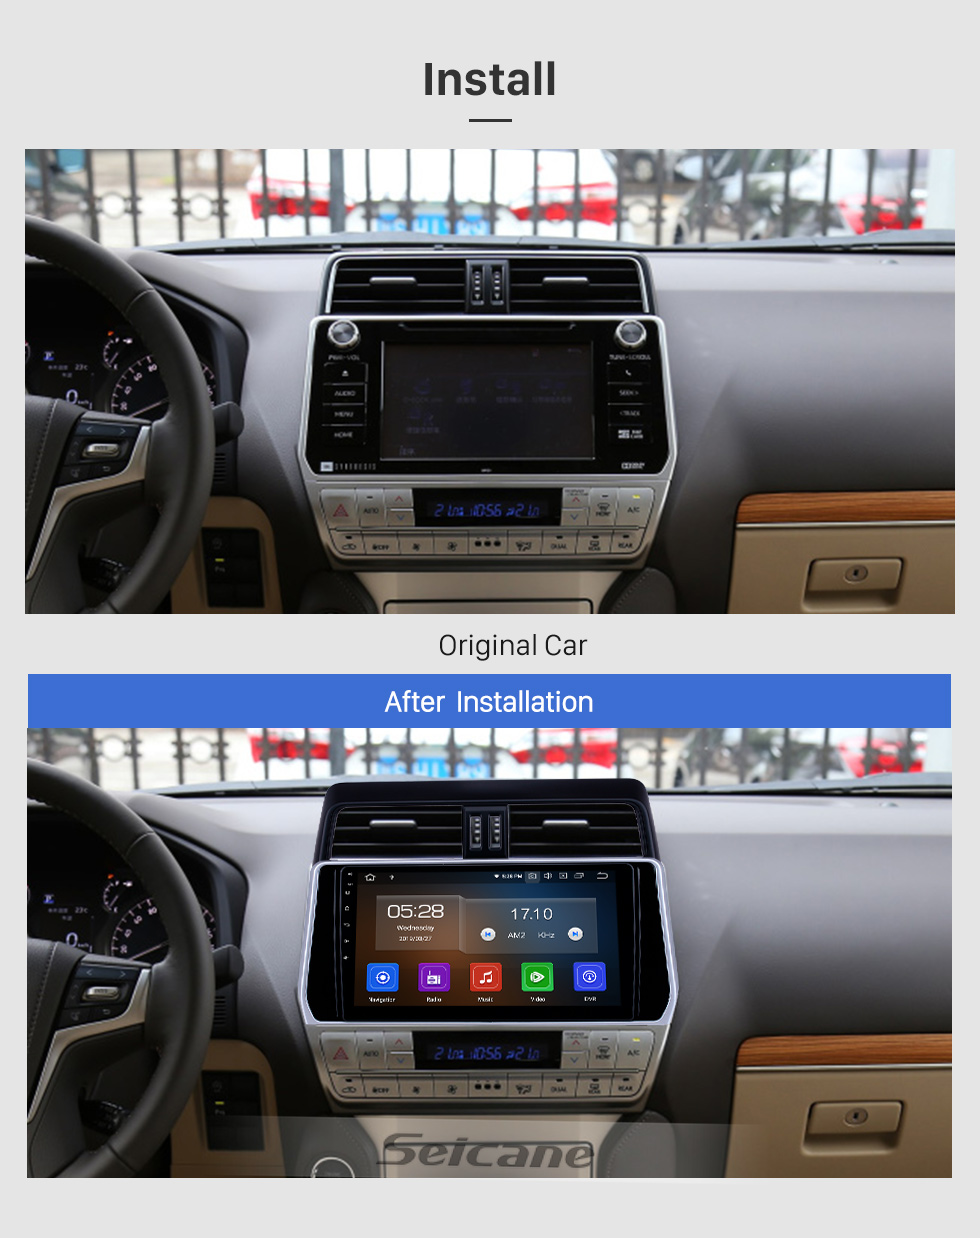 Seicane 10.1 inch Android 9.0 GPS Navigation Radio for 2018 Toyota Prado Bluetooth HD Touchscreen AUX Carplay support Backup camera